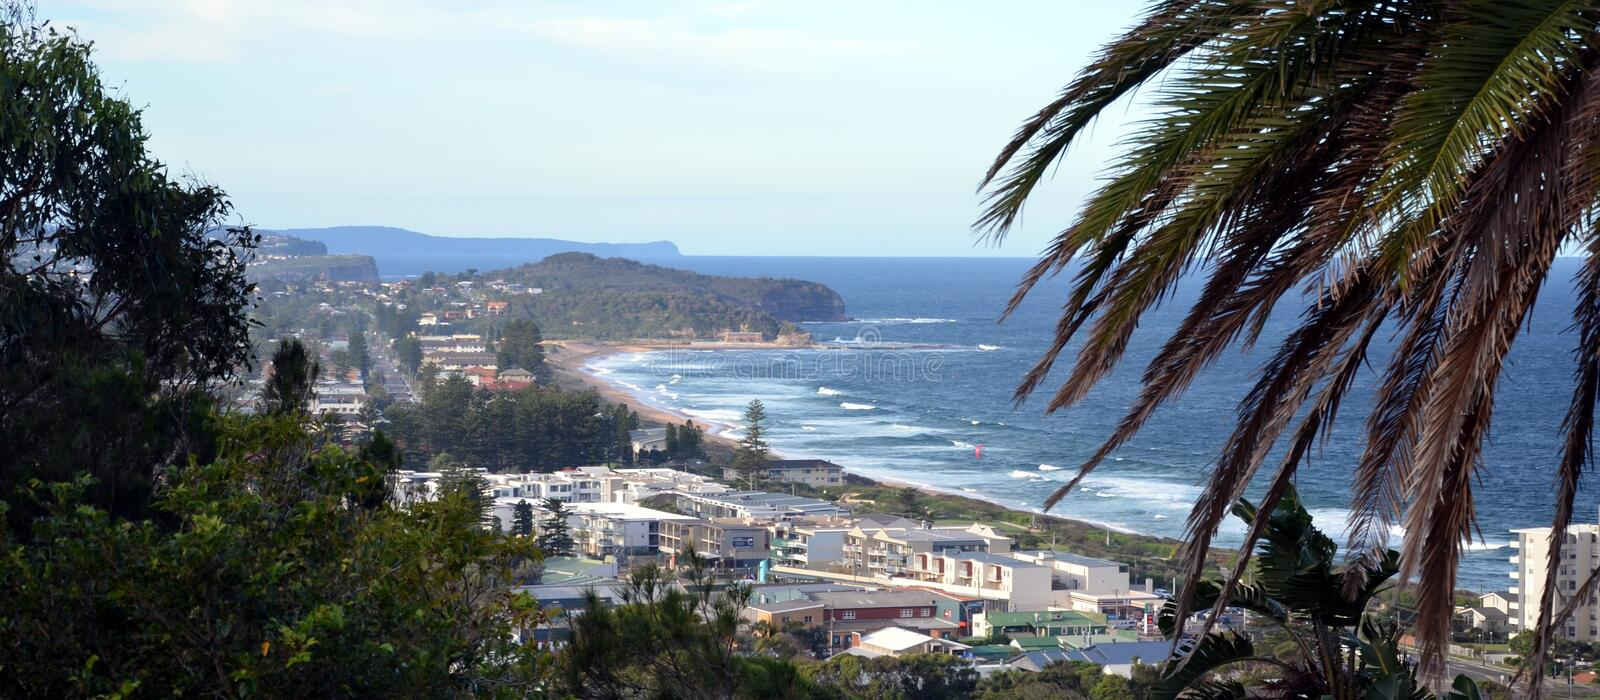 Plage de Narrabeen de plateau de Collaroy photos libres de droits